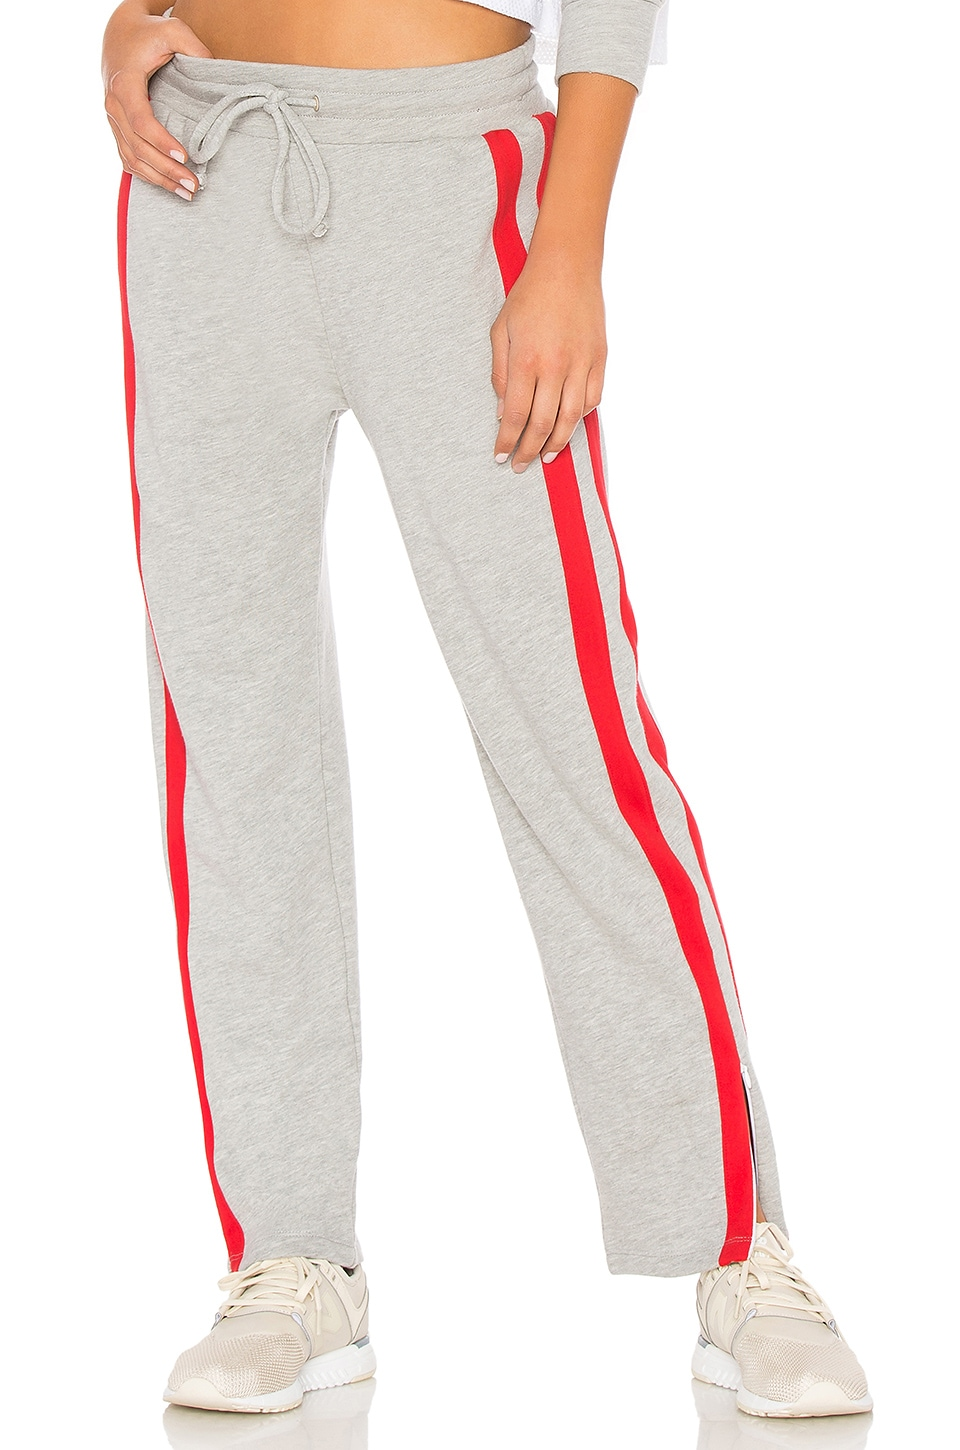 YEAR OF OURS THE ELAINE SWEATPANTS